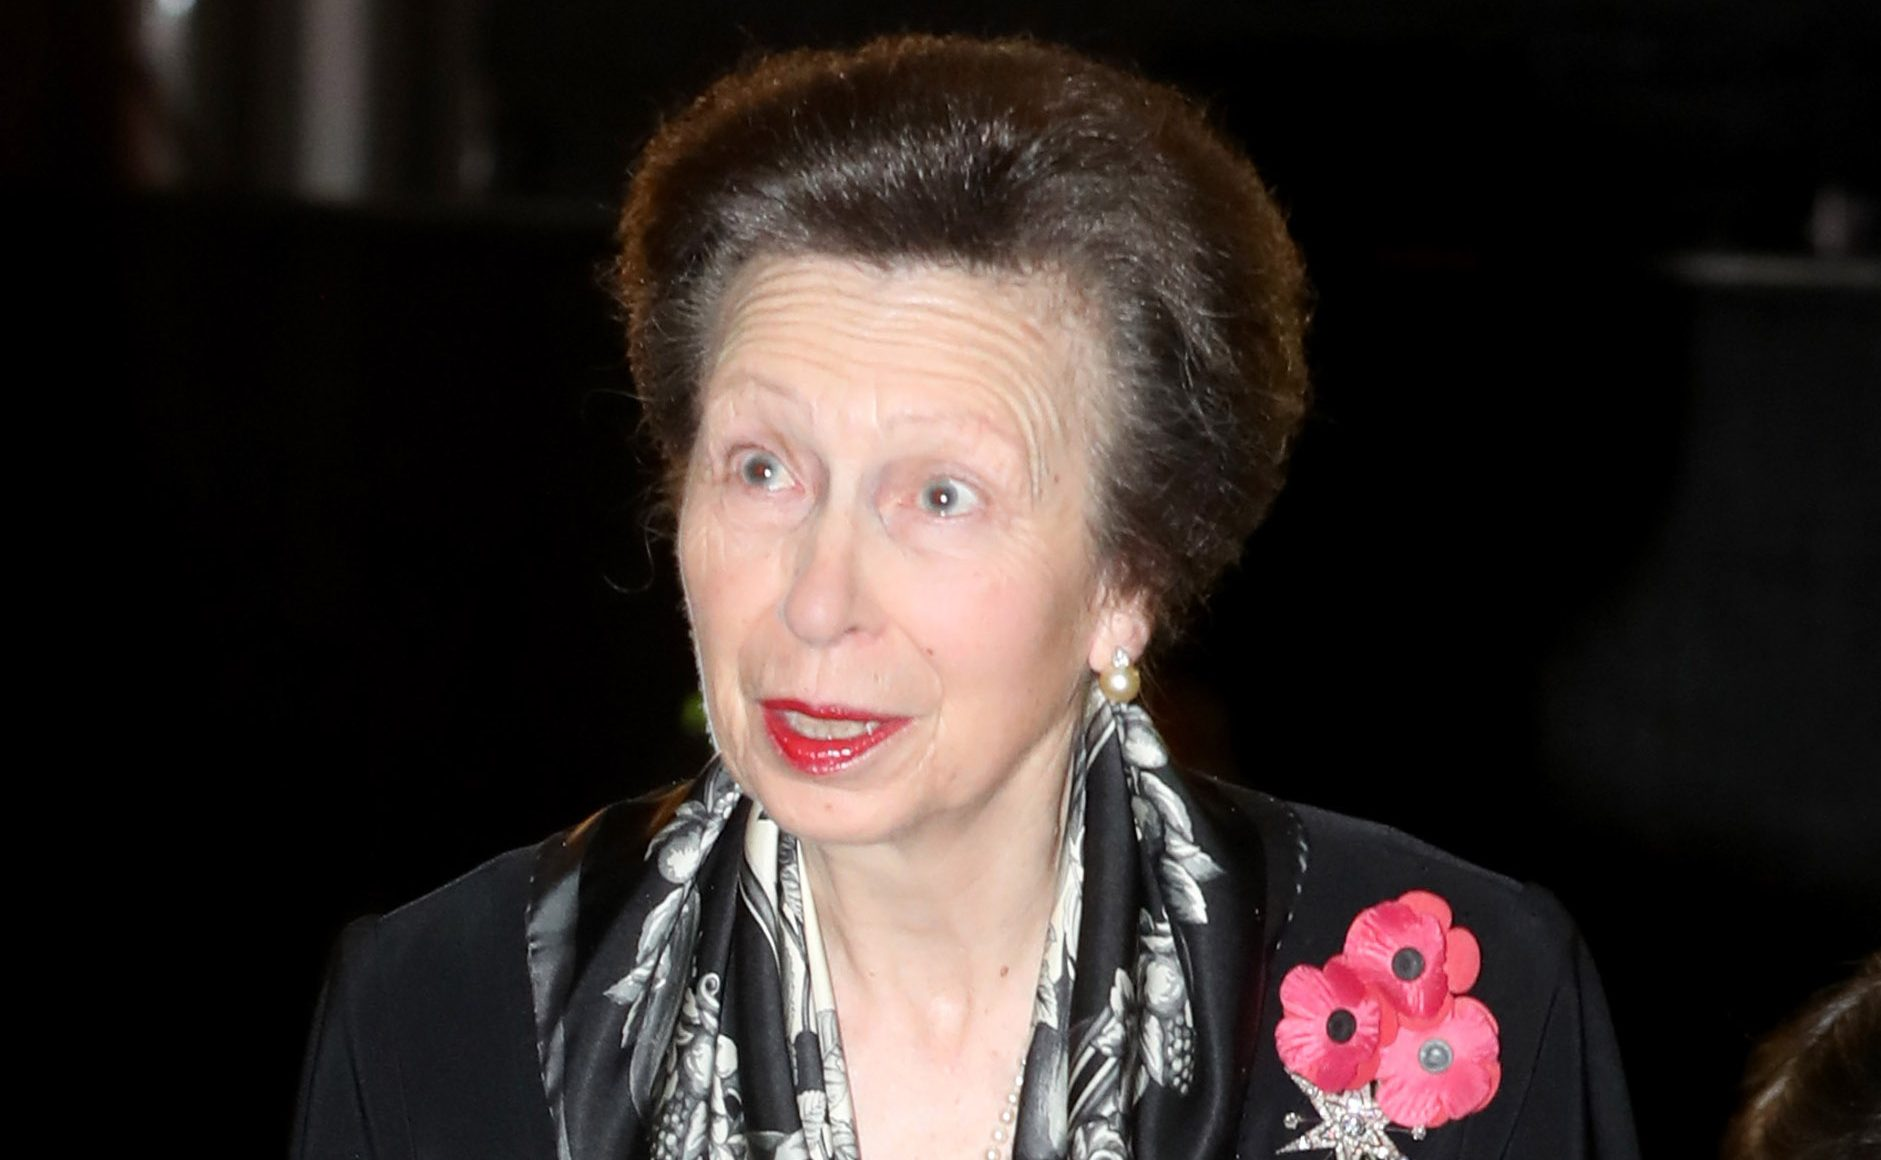 Royal fans back Princess Anne as Queen appears to chastise her over Donald Trump 'snub'